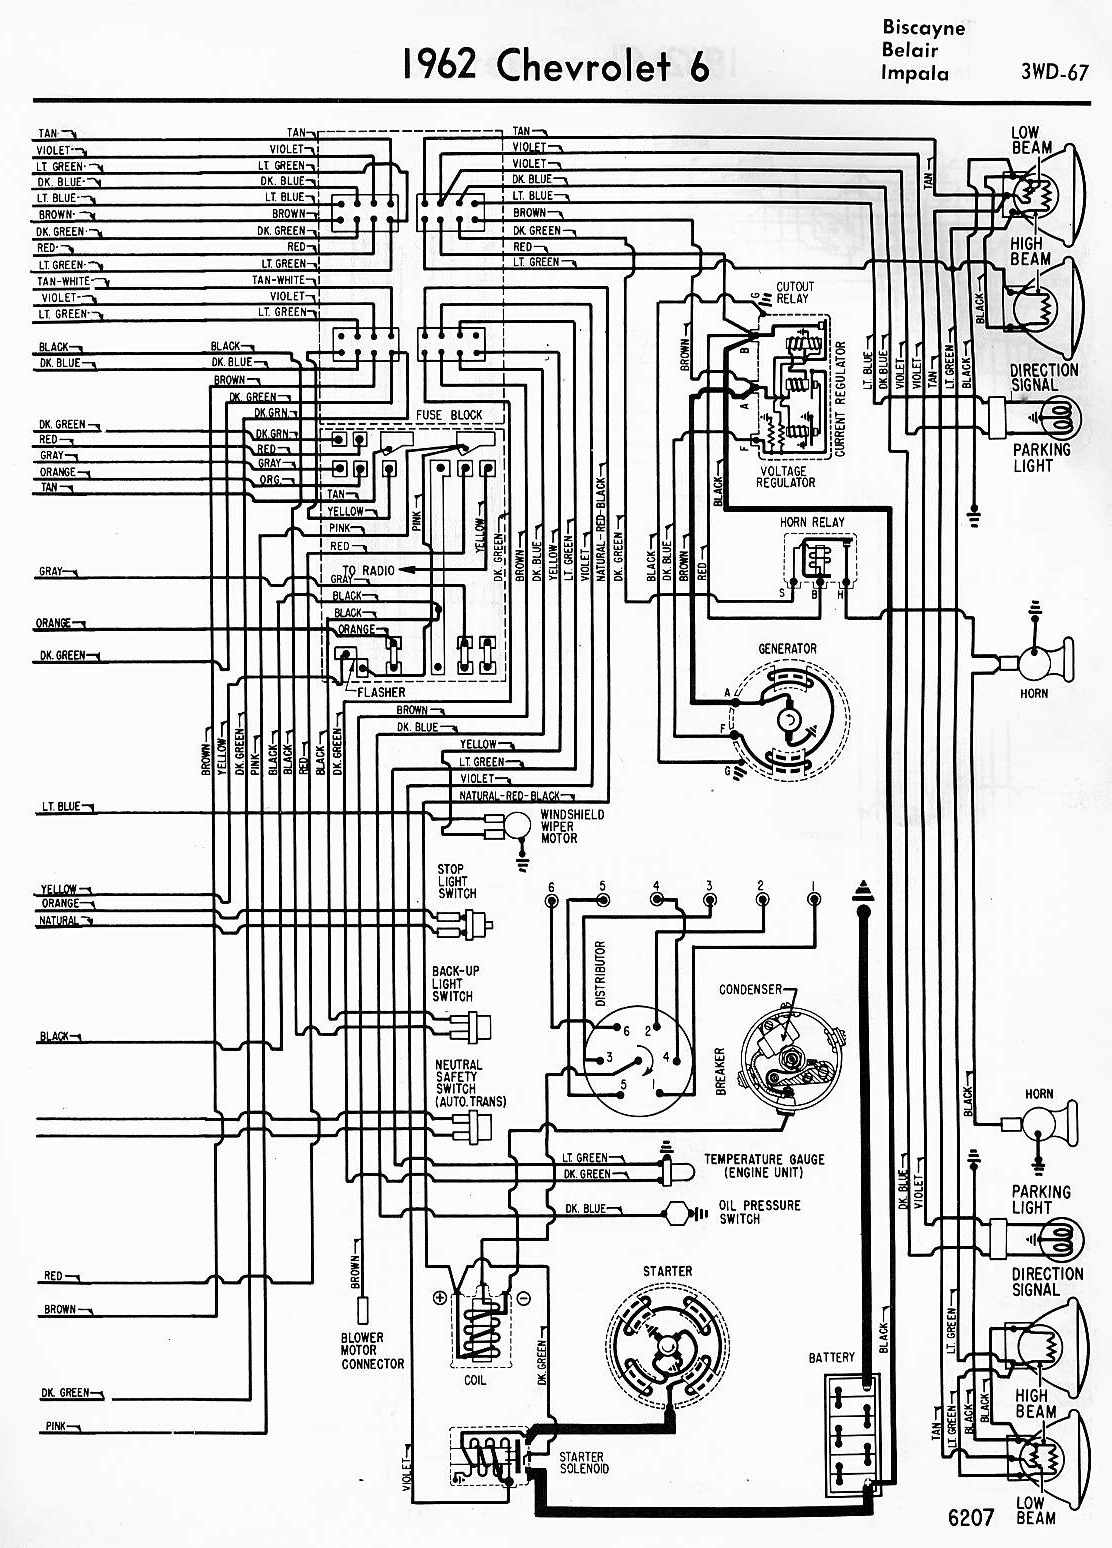 Electrical+Wiring+Diagram+Of+1964+Chevrolet+6 electrical wiring diagram of 1962 chevrolet 6 all about wiring 1966 chevy impala wiring diagram at reclaimingppi.co